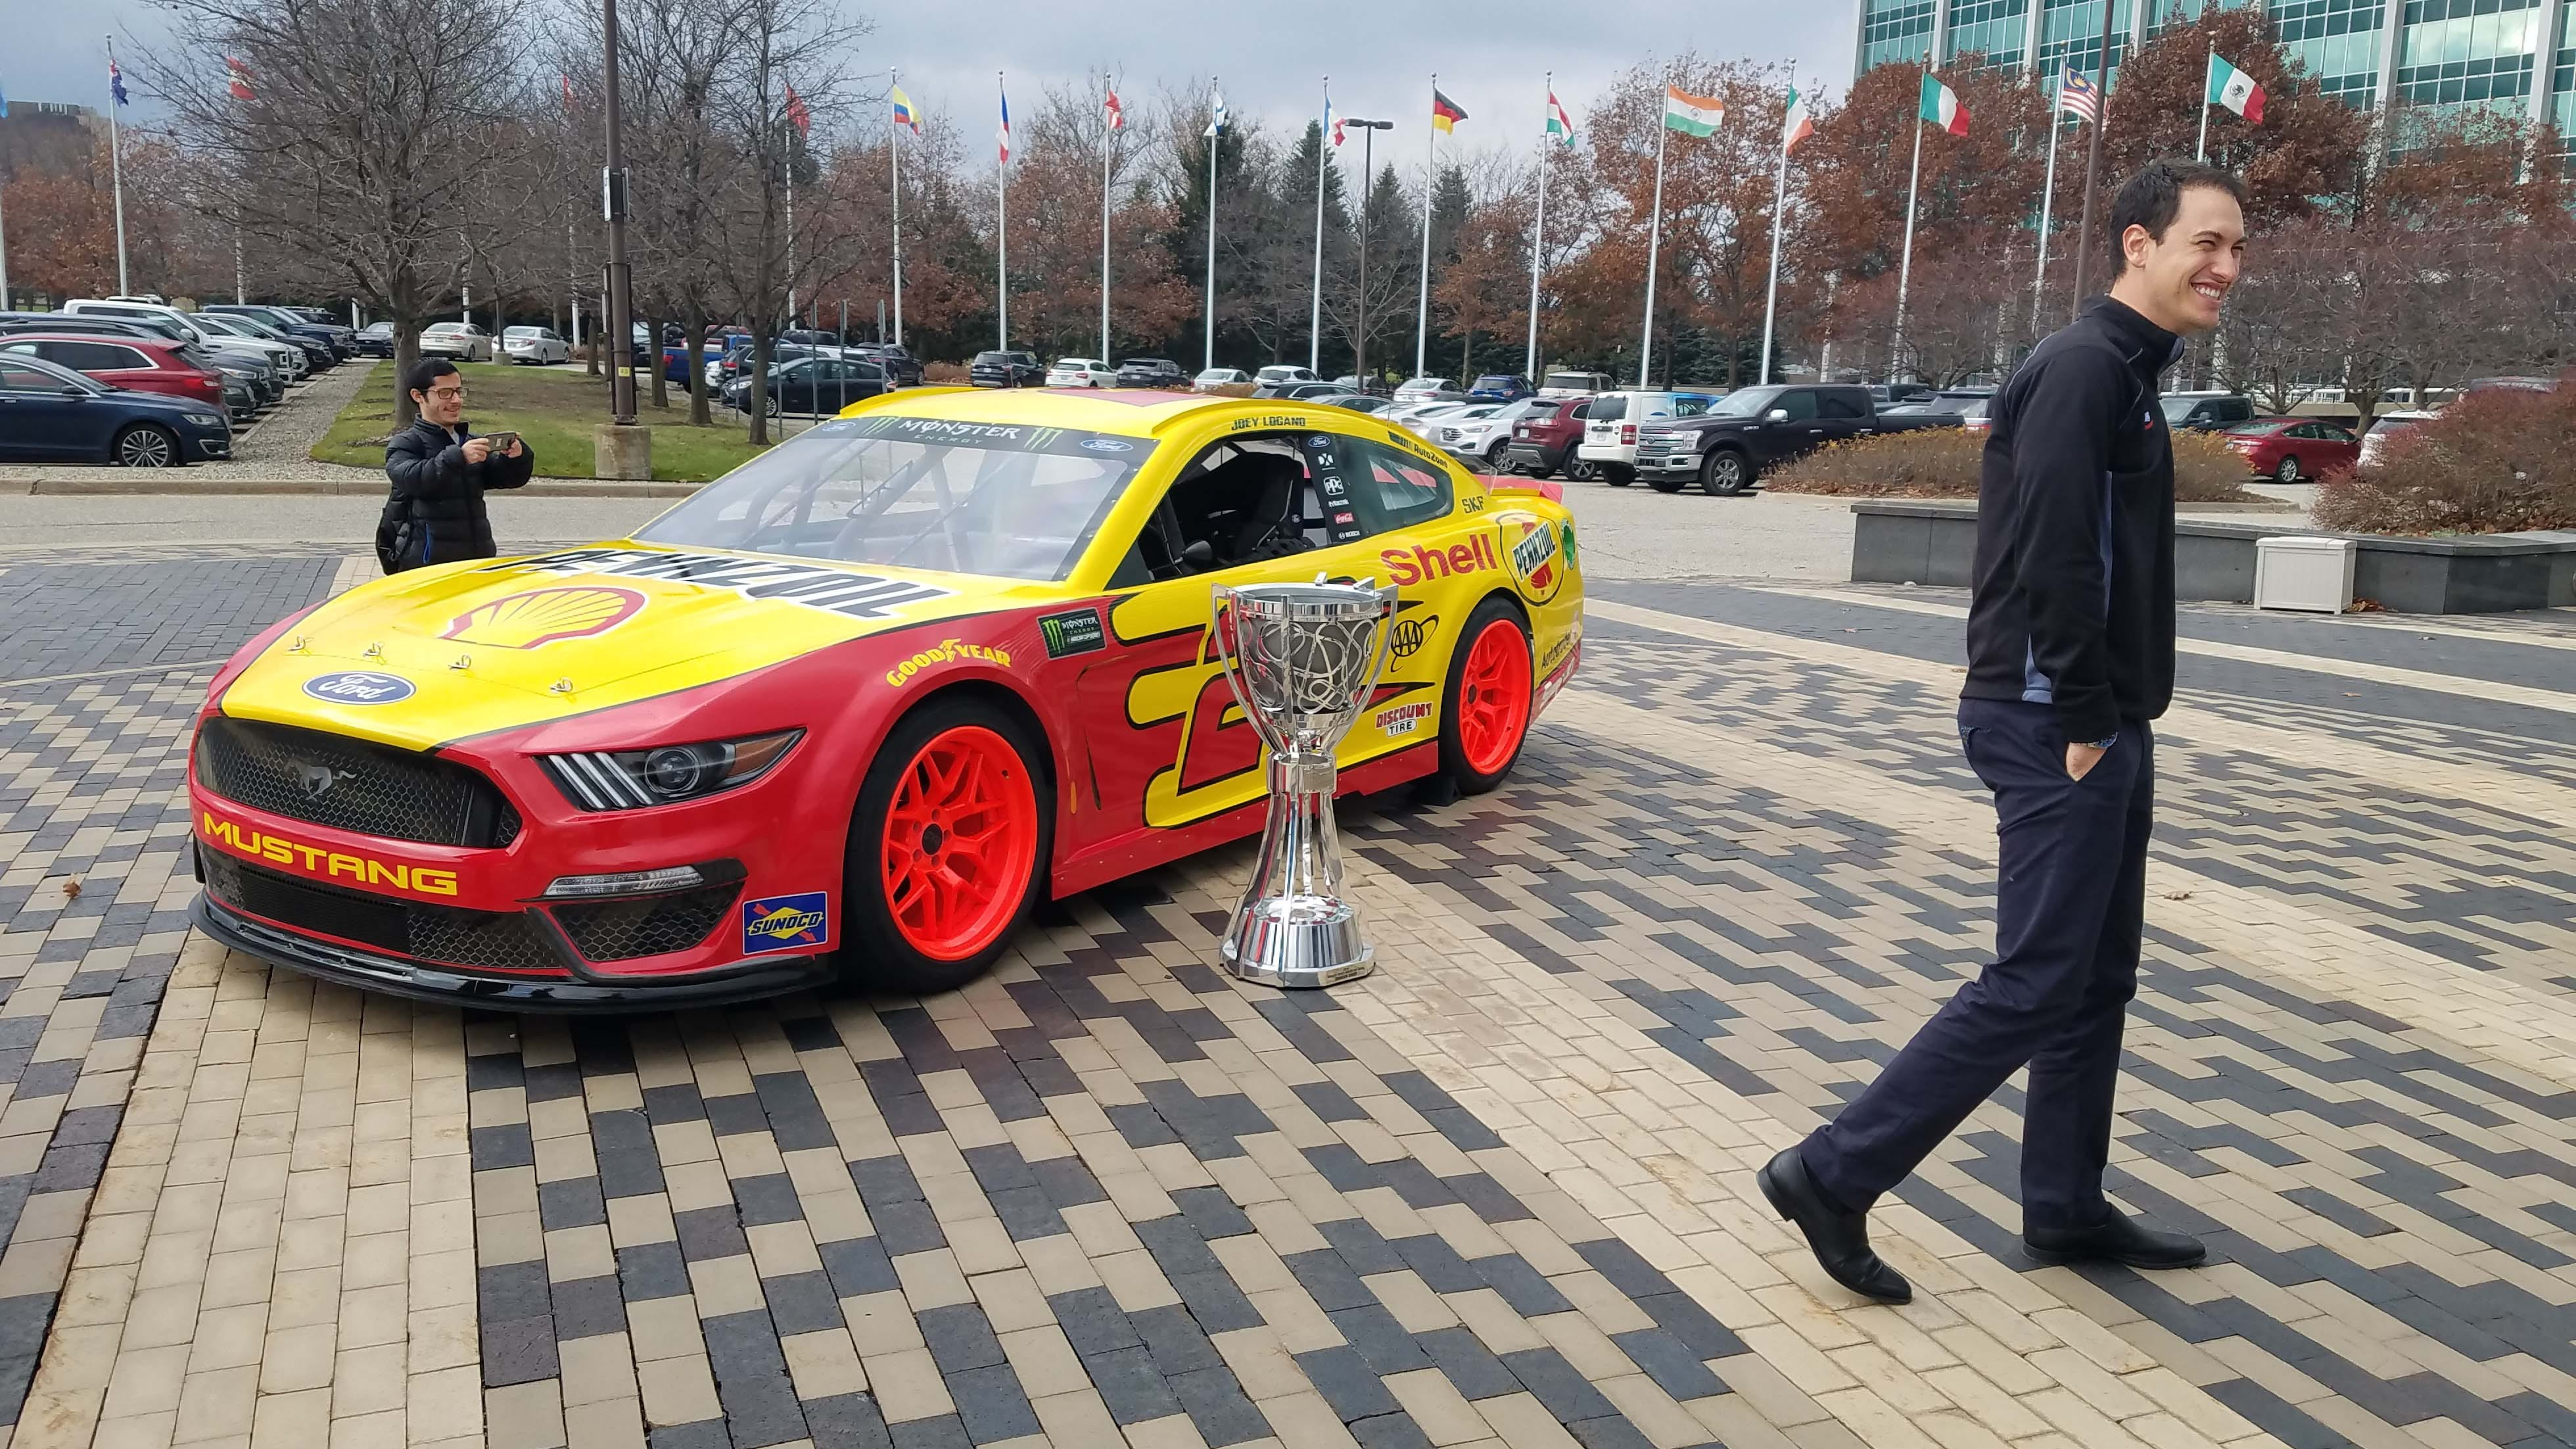 Ford and Logano bring home NASCAR trophies to Dearborn